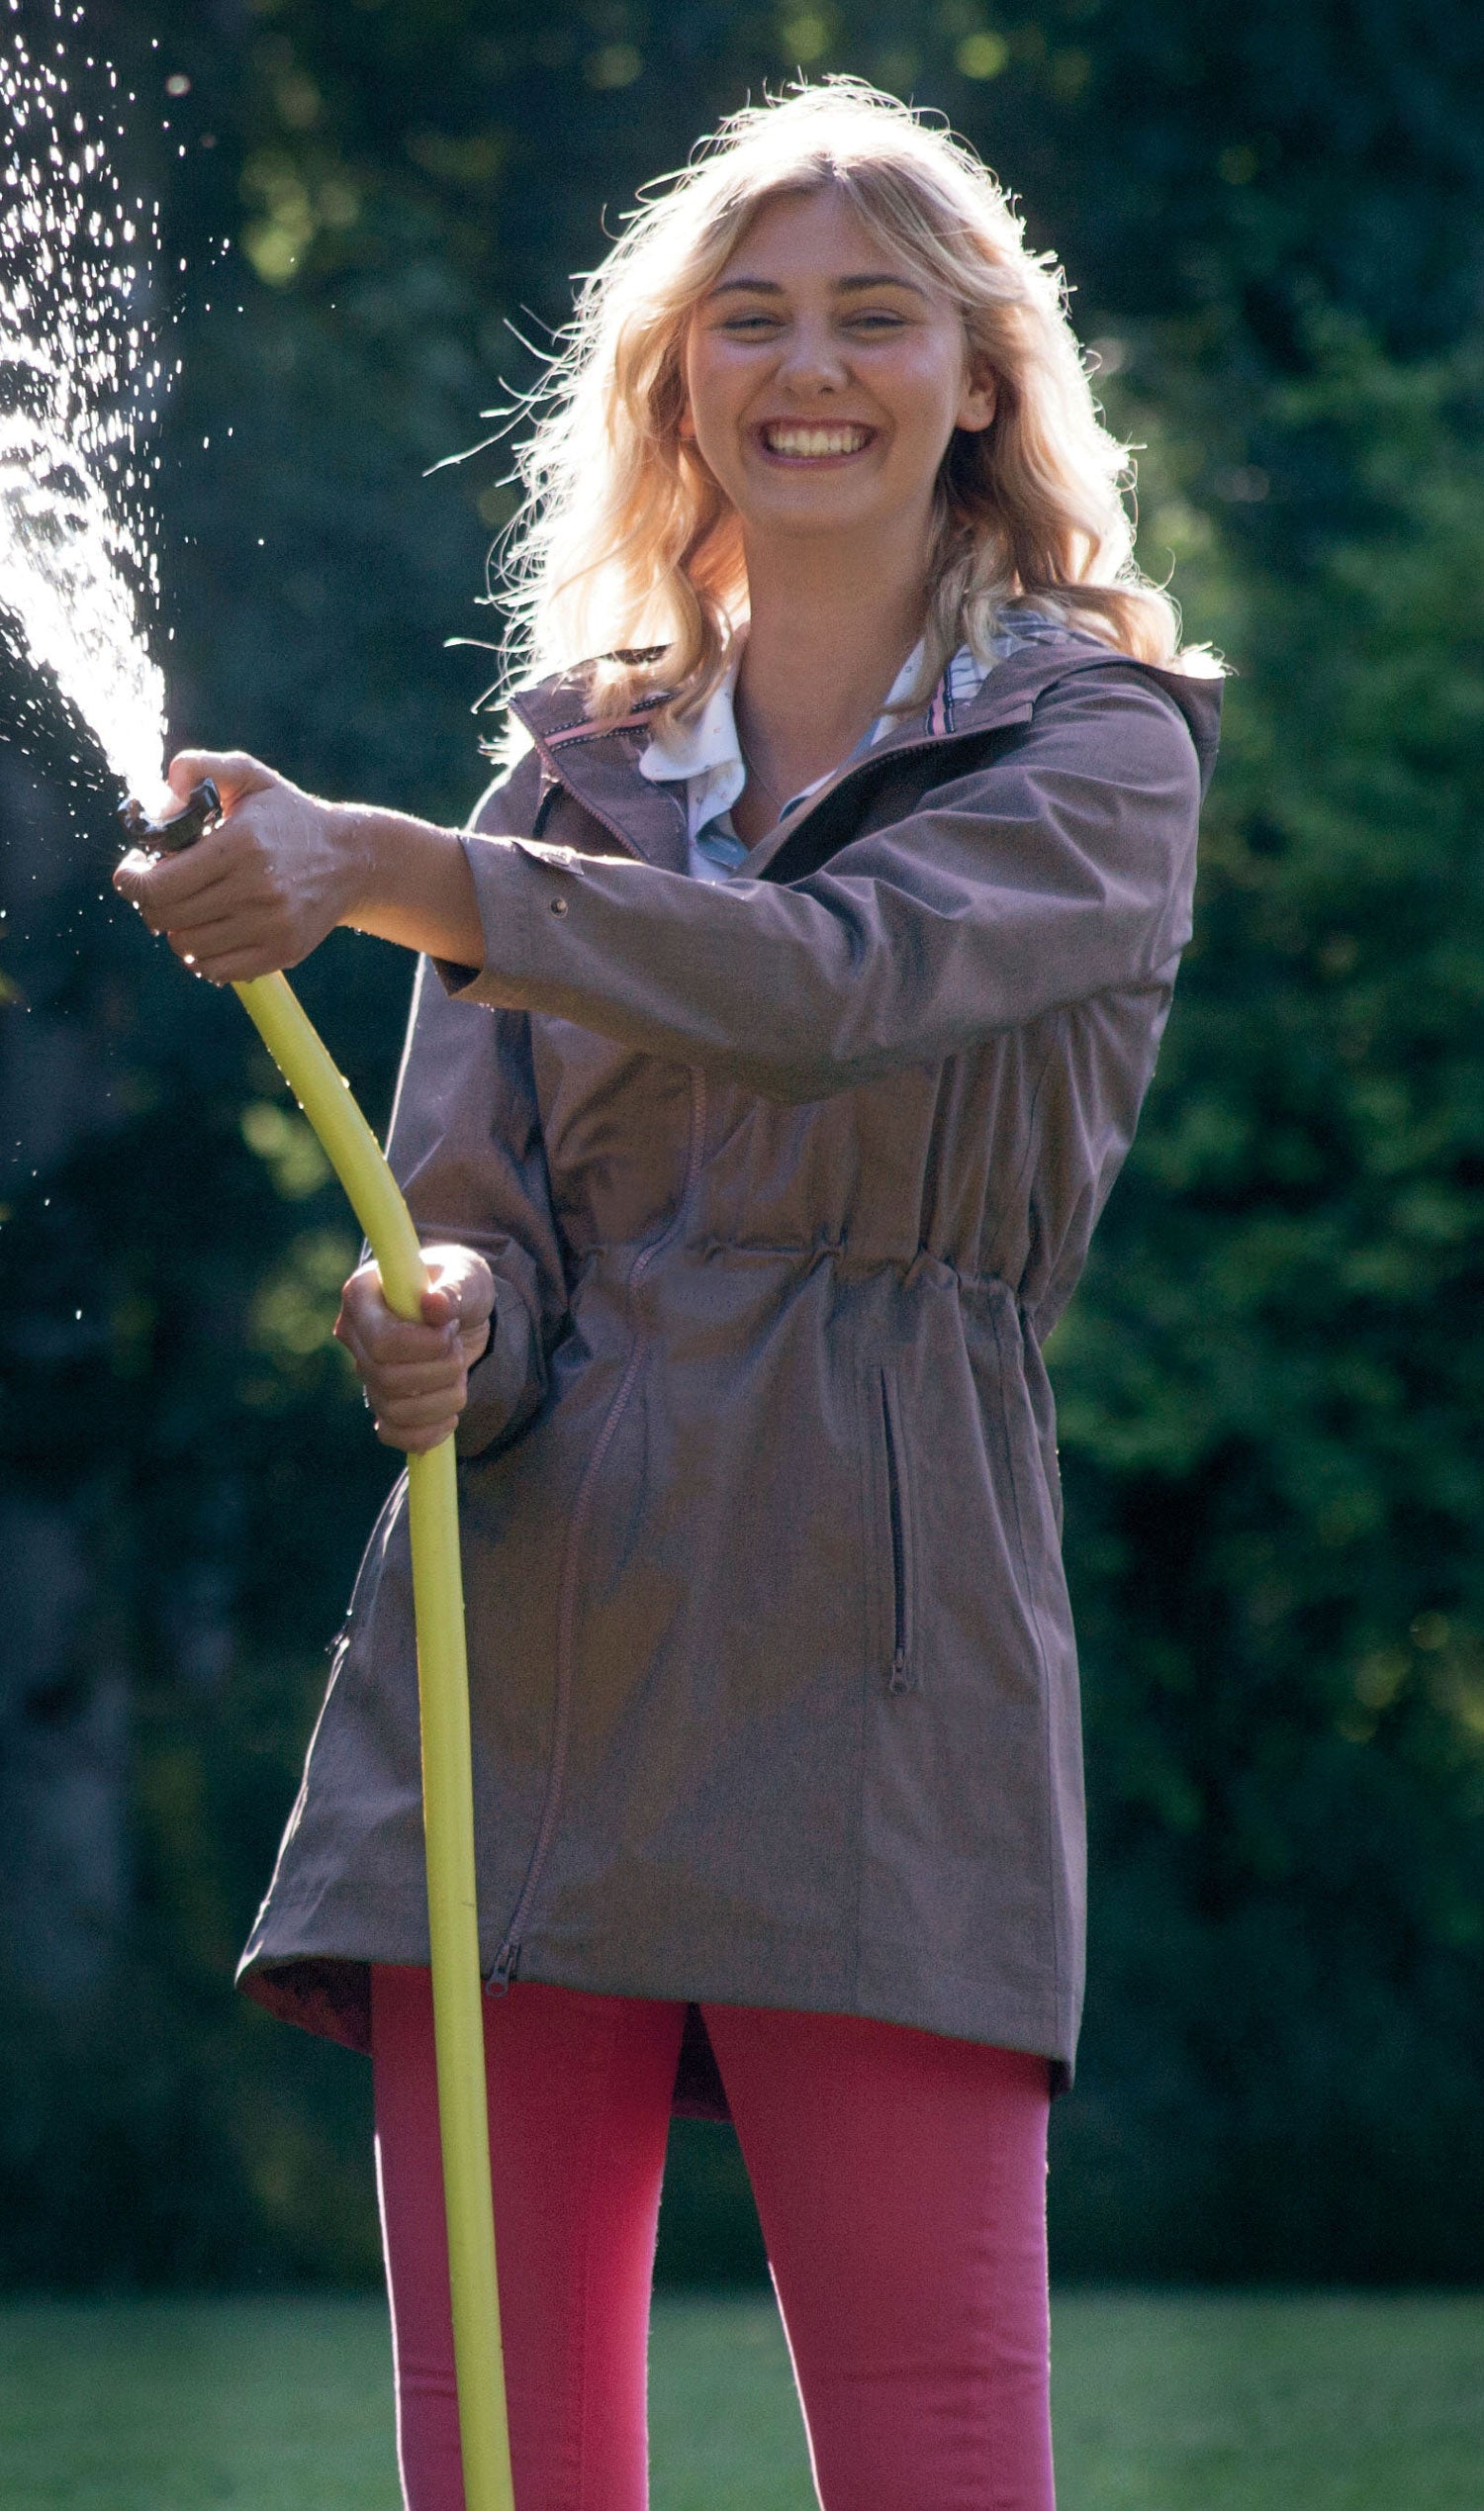 lady spraying water through a hose in a jake murphy coat